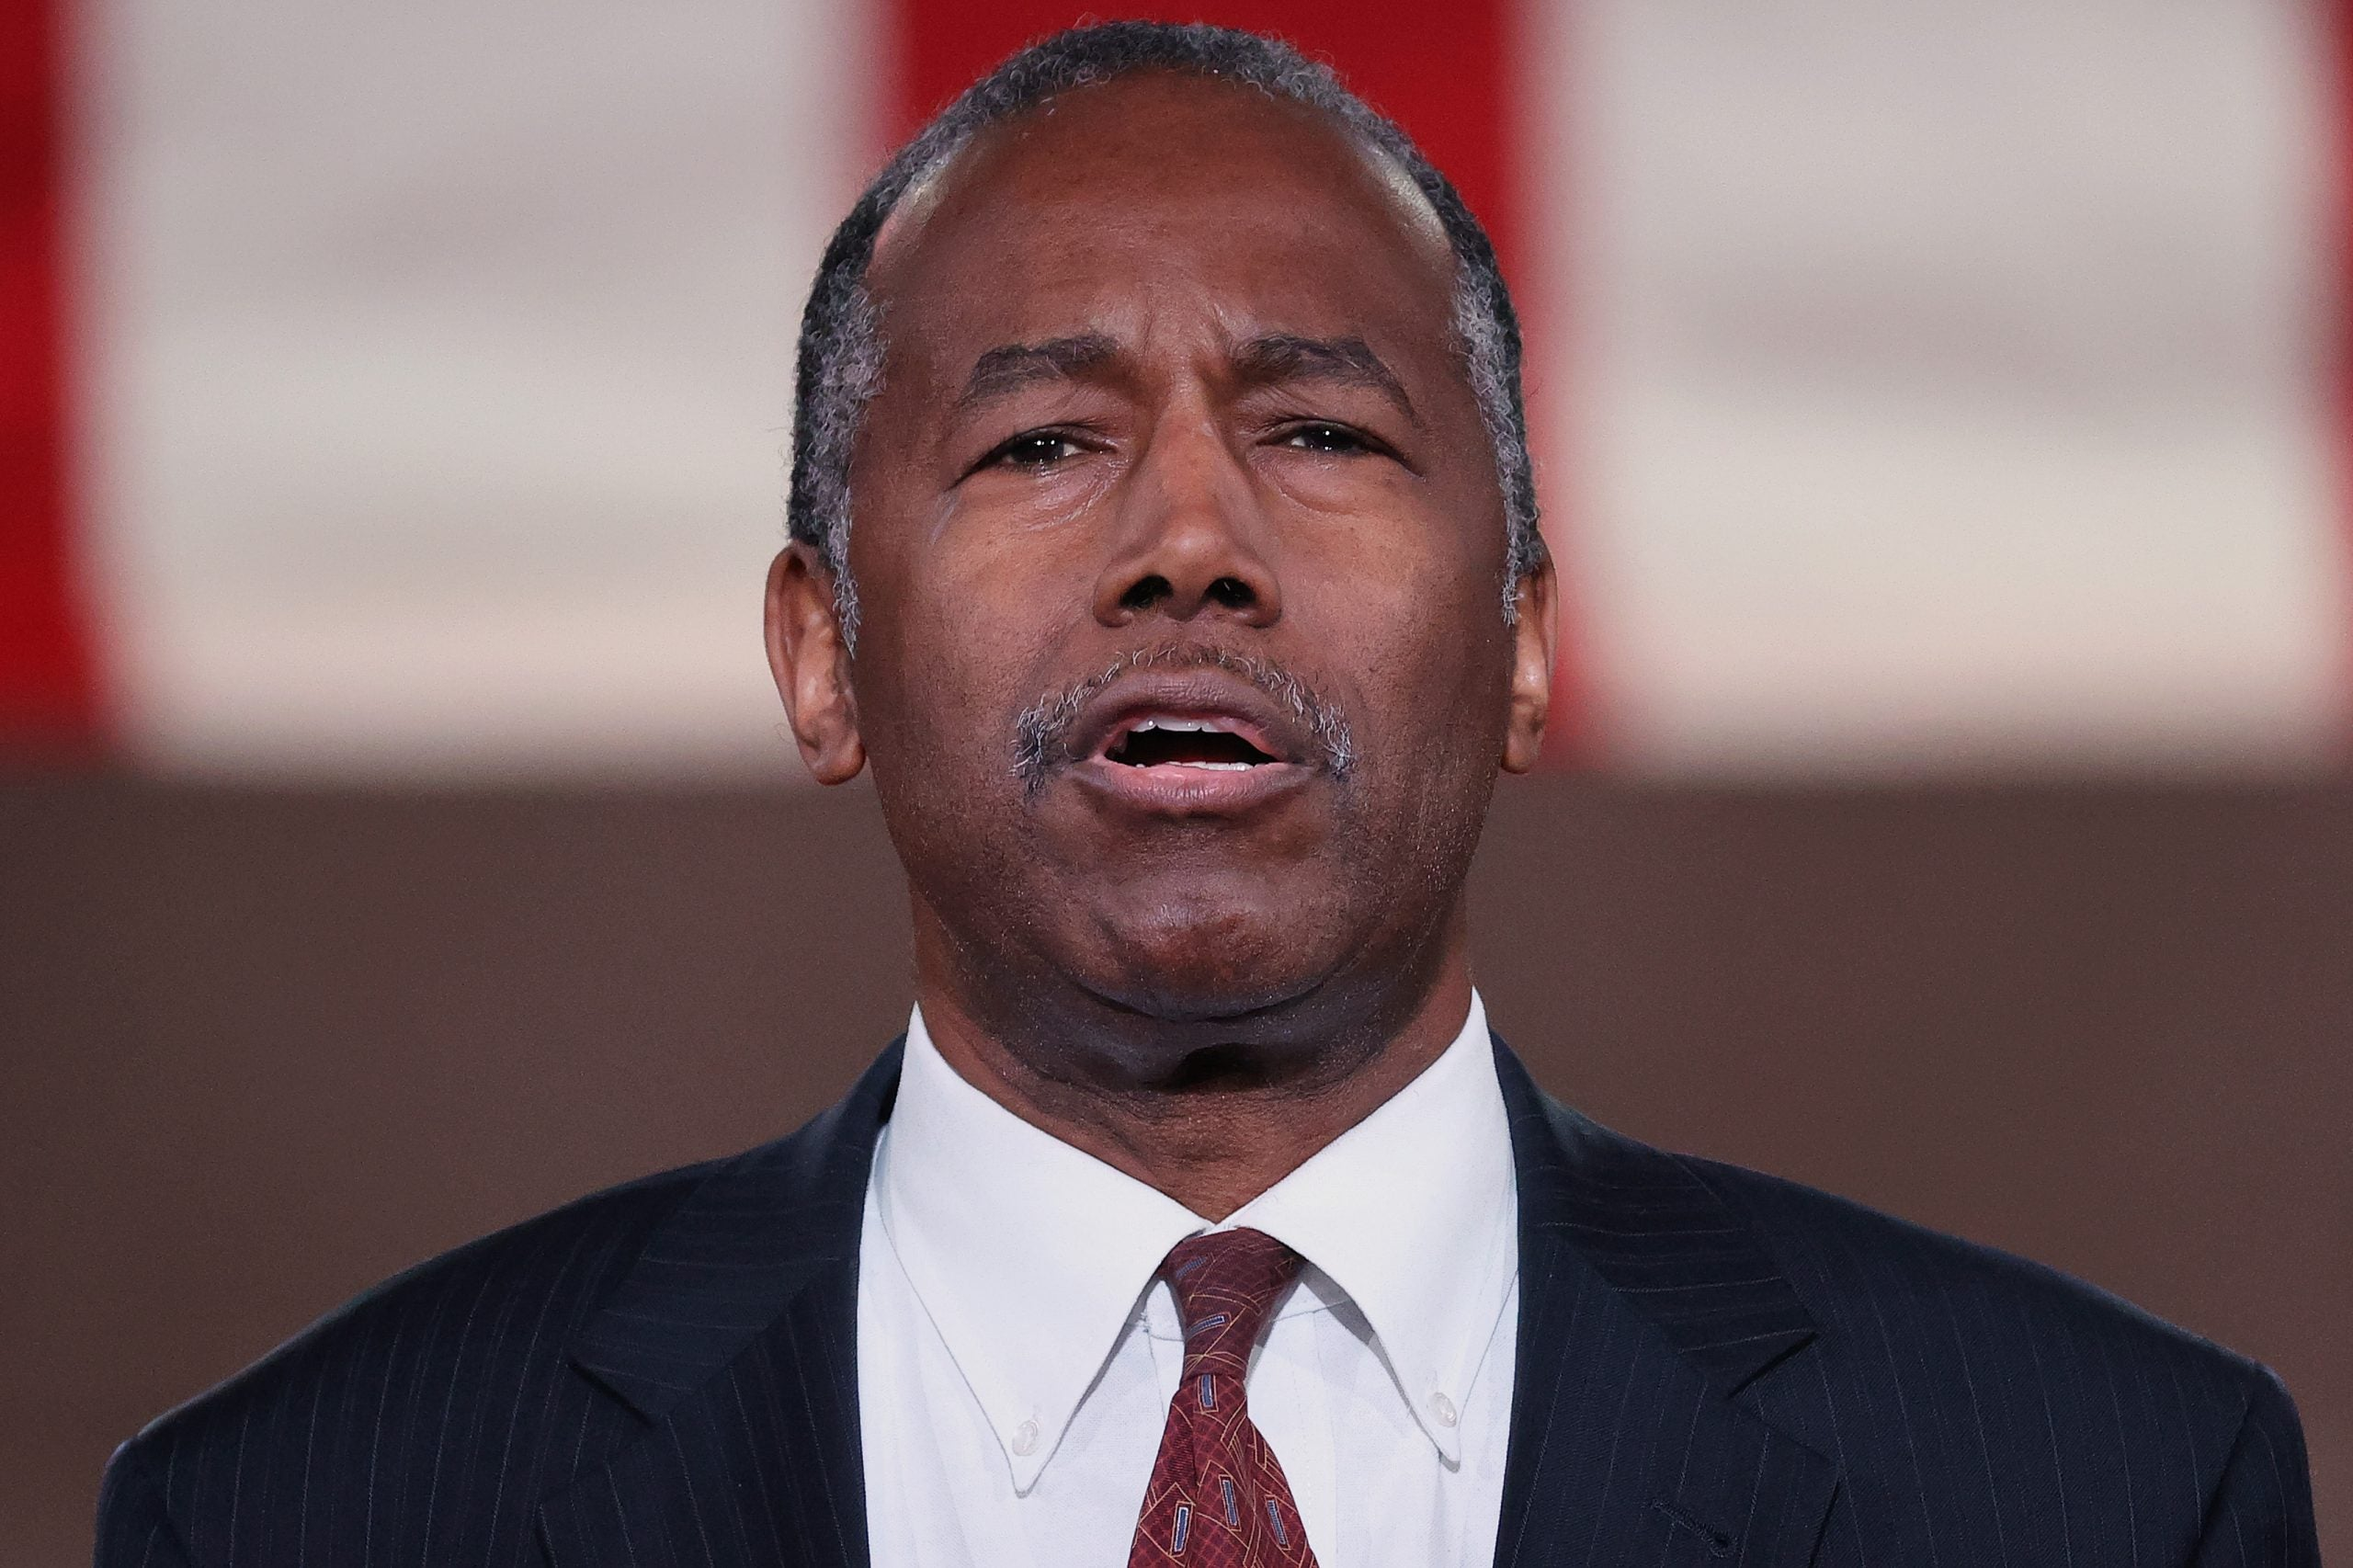 Make it Stop: Dr. Ben Carson Compares Himself to a 'Runaway Slave'